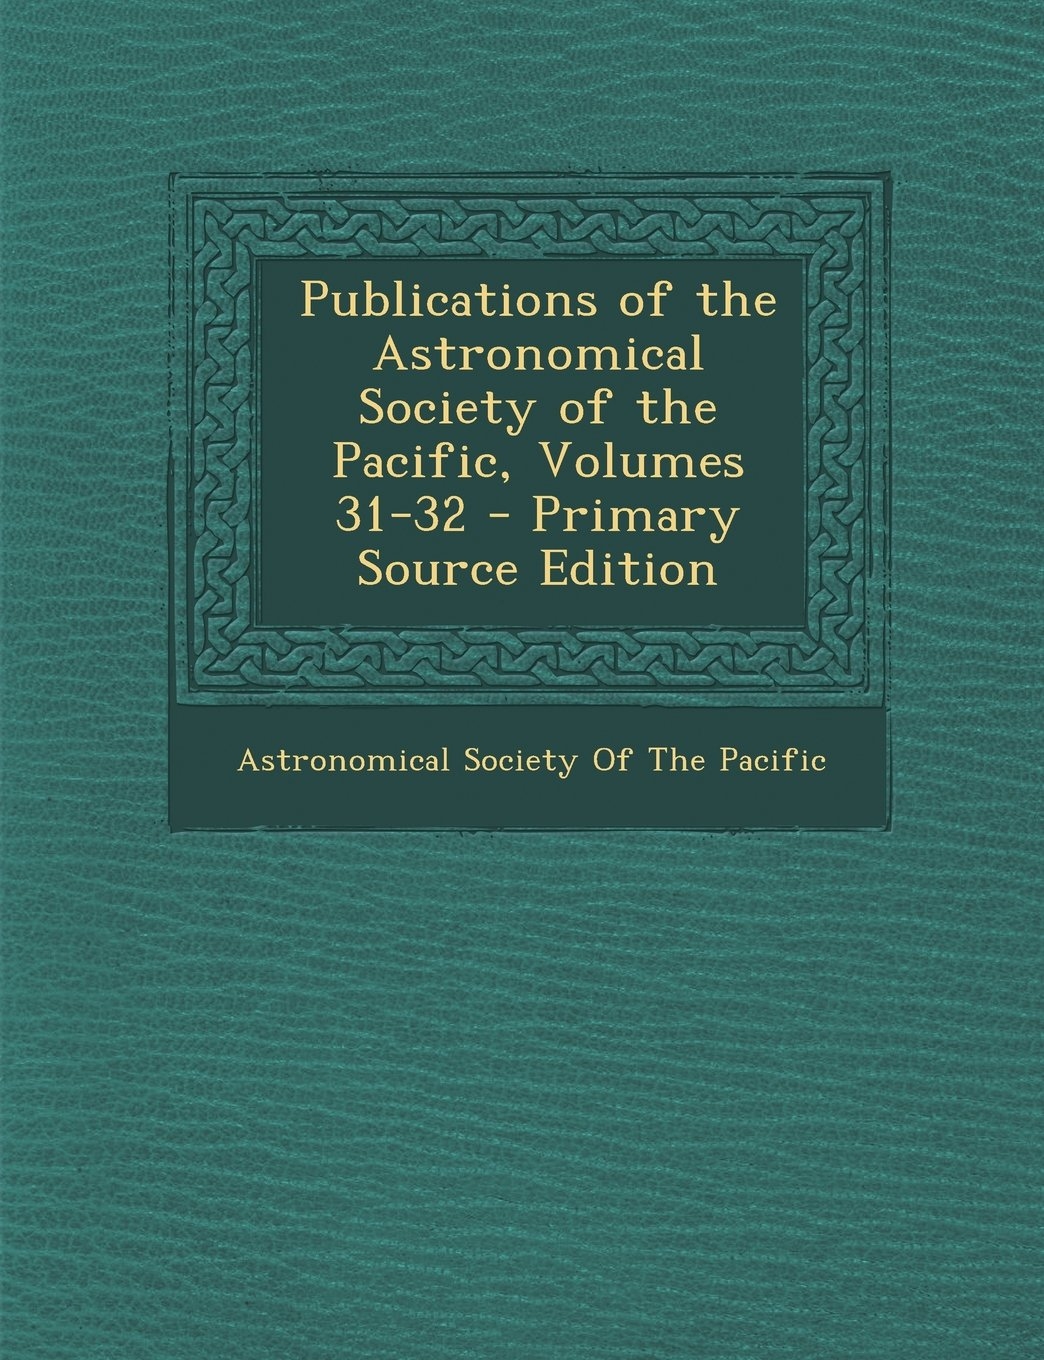 Download Publications of the Astronomical Society of the Pacific, Volumes 31-32 - Primary Source Edition PDF